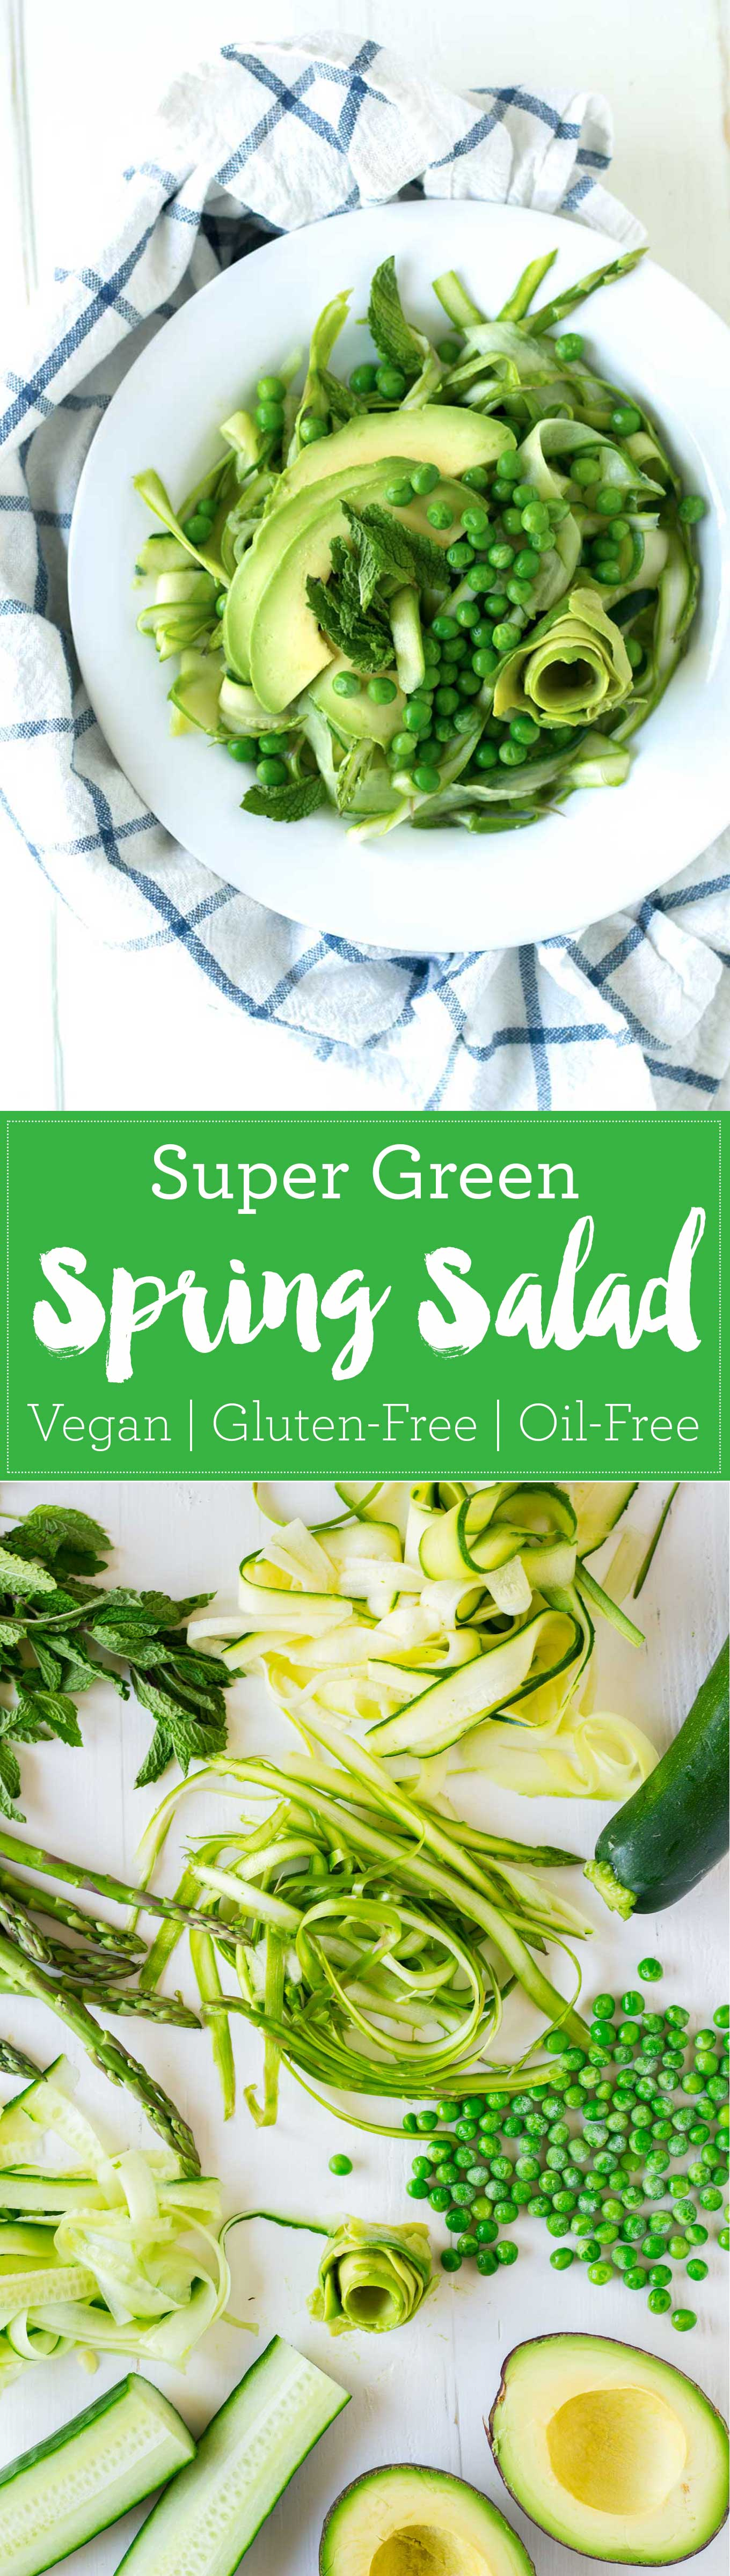 This super green spring salad is chock full of all of the green things of the season! Toss with a very simple 3-ingredient dressing and enjoy! Vegan, Gluten-Free, Oil-Free | http://eatwithinyourmeans.com